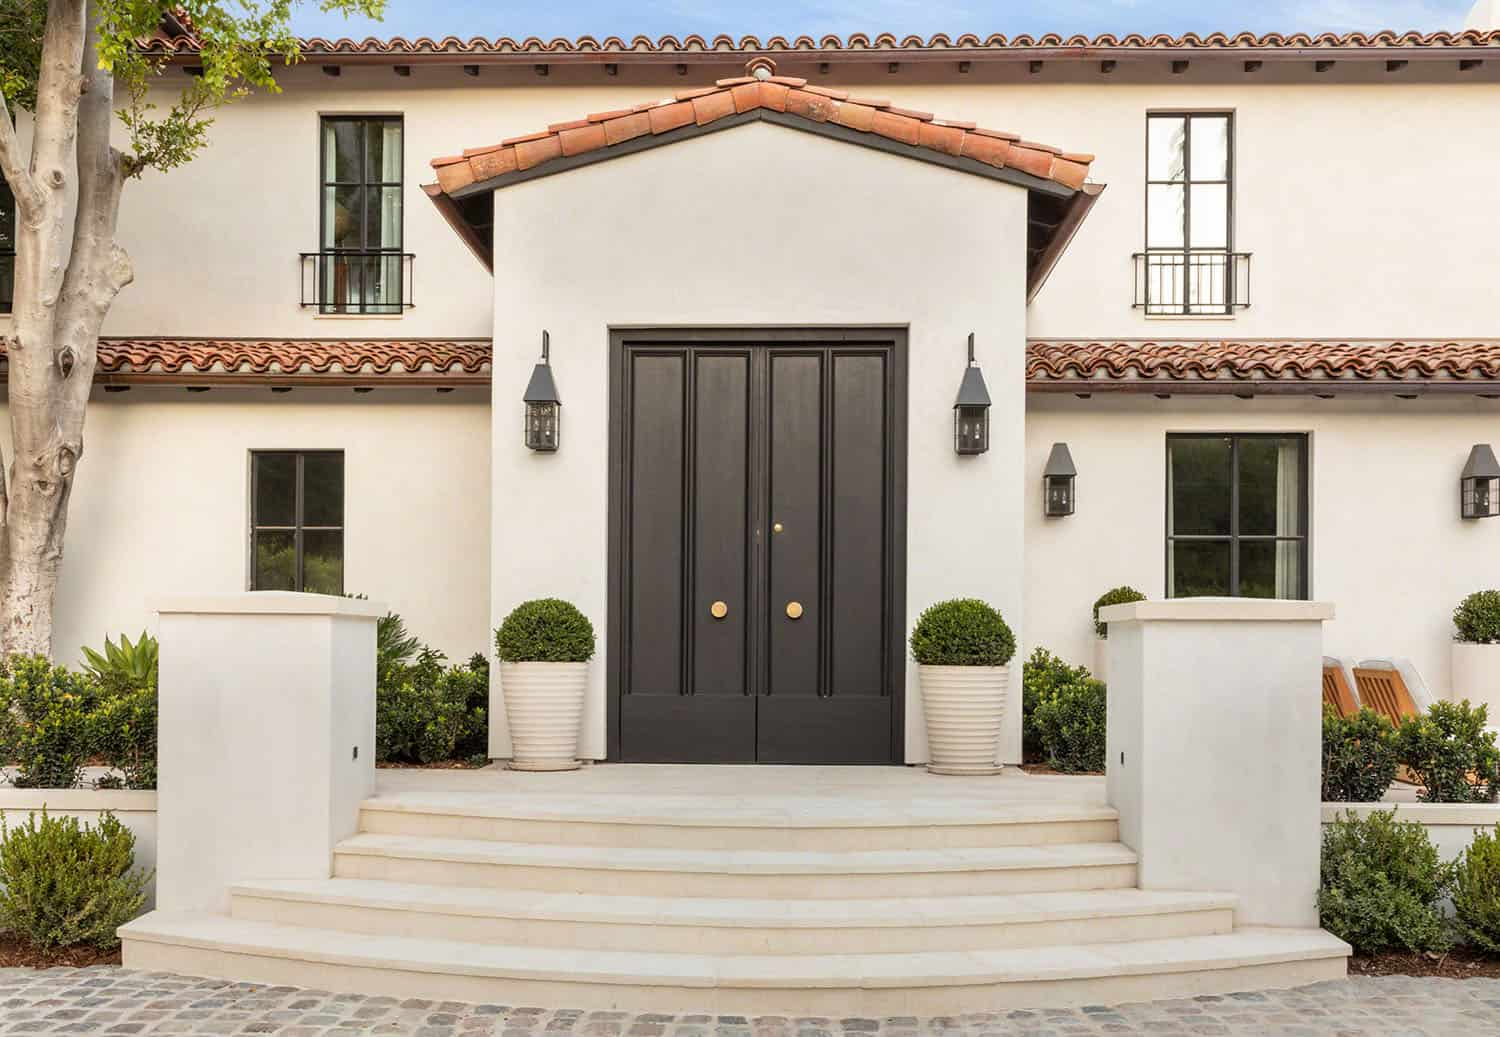 spanish-colonial-style-home-exterior